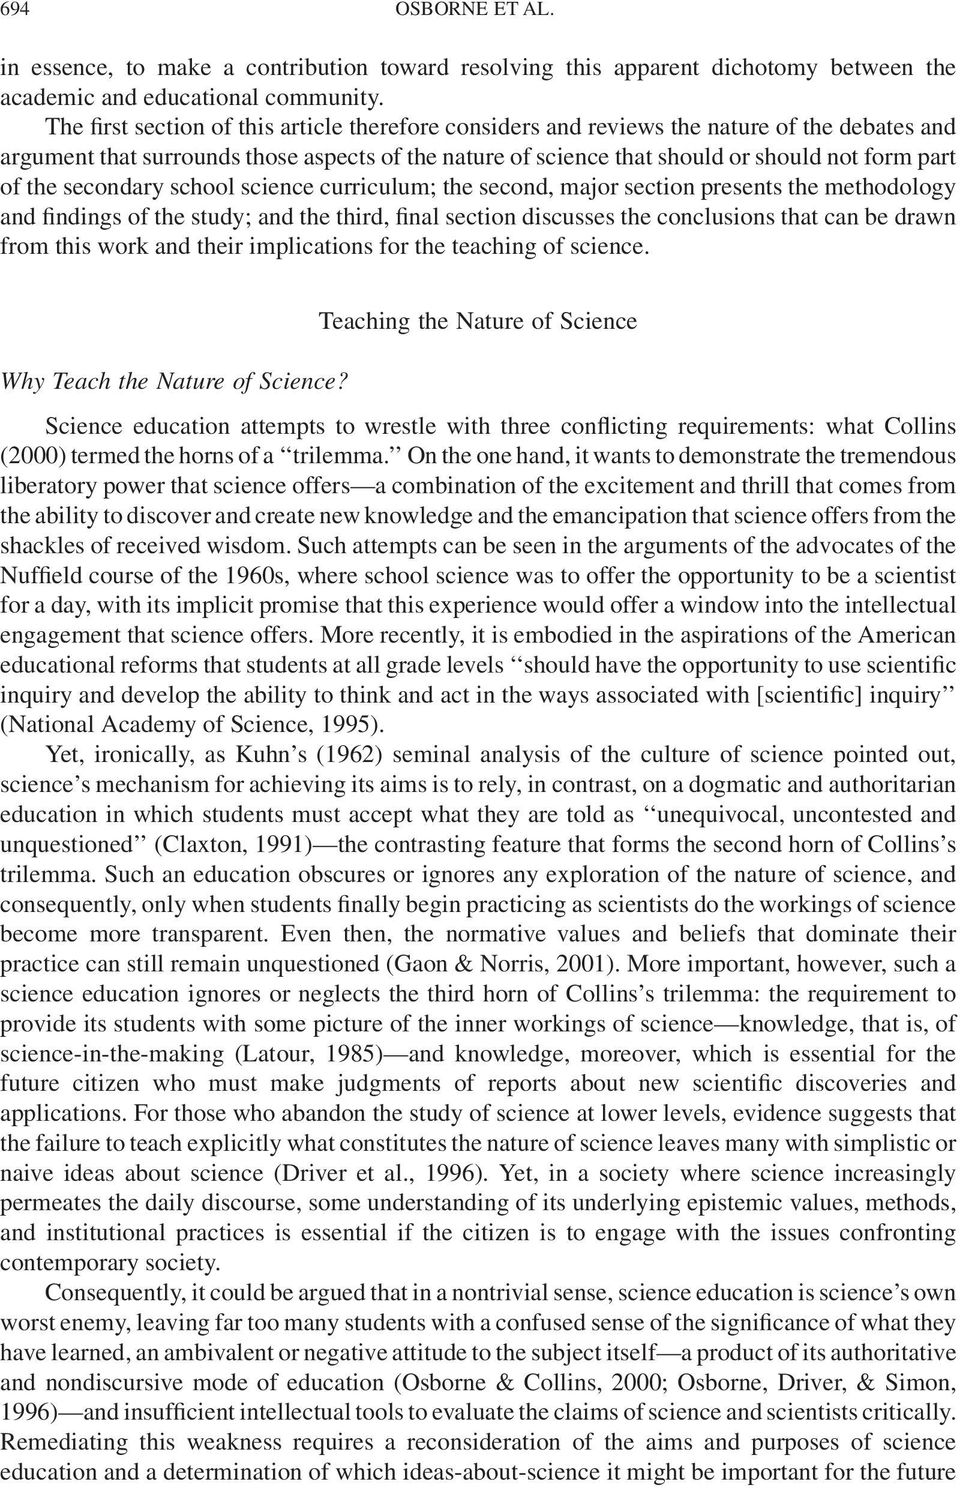 the secondary school science curriculum; the second, major section presents the methodology and findings of the study; and the third, final section discusses the conclusions that can be drawn from